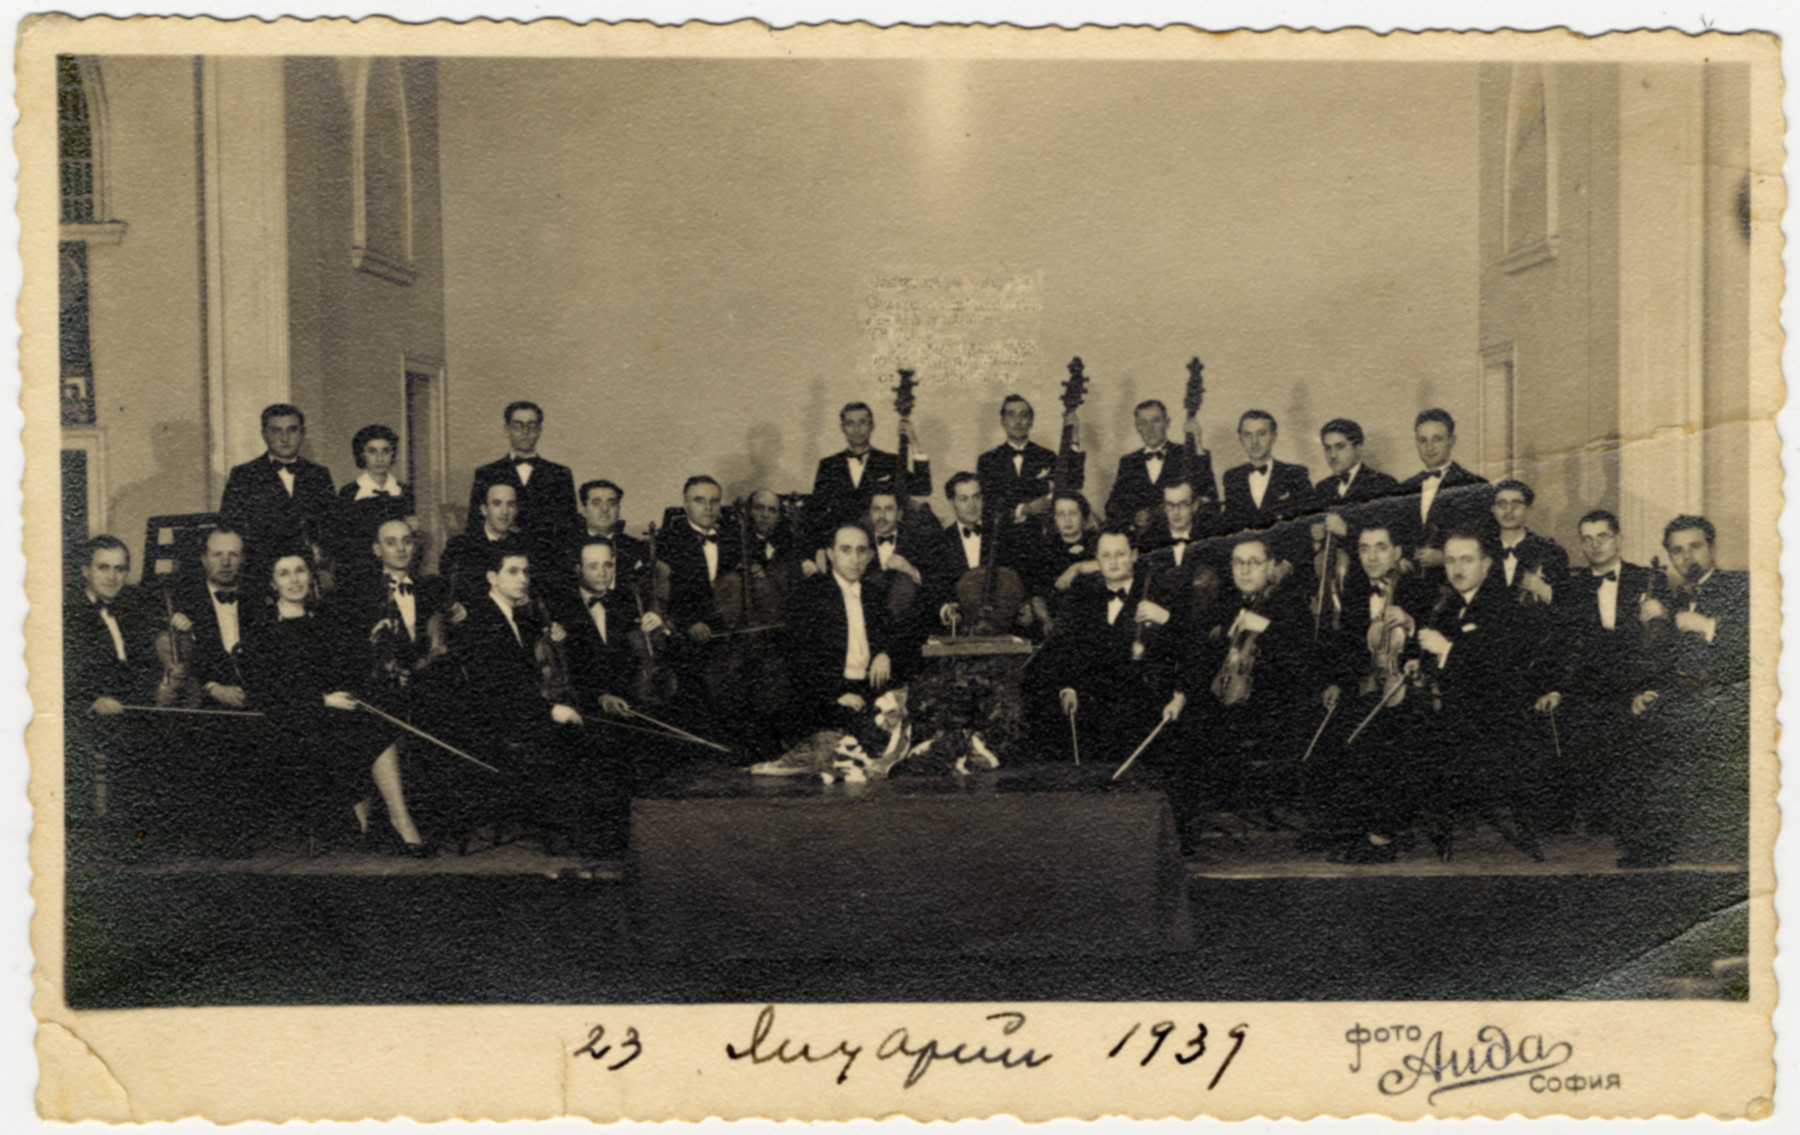 Studio portrait of the strings section of The Jewish Symphony Orchestra of Sofia.  The conductor is Mario Menashe Bronza, and the concert master is Leon Suroujon (who after WWII became the Director of the Musical Academy of Sofia).  Nissim Farhi is seated in the second row, fifth from the left.